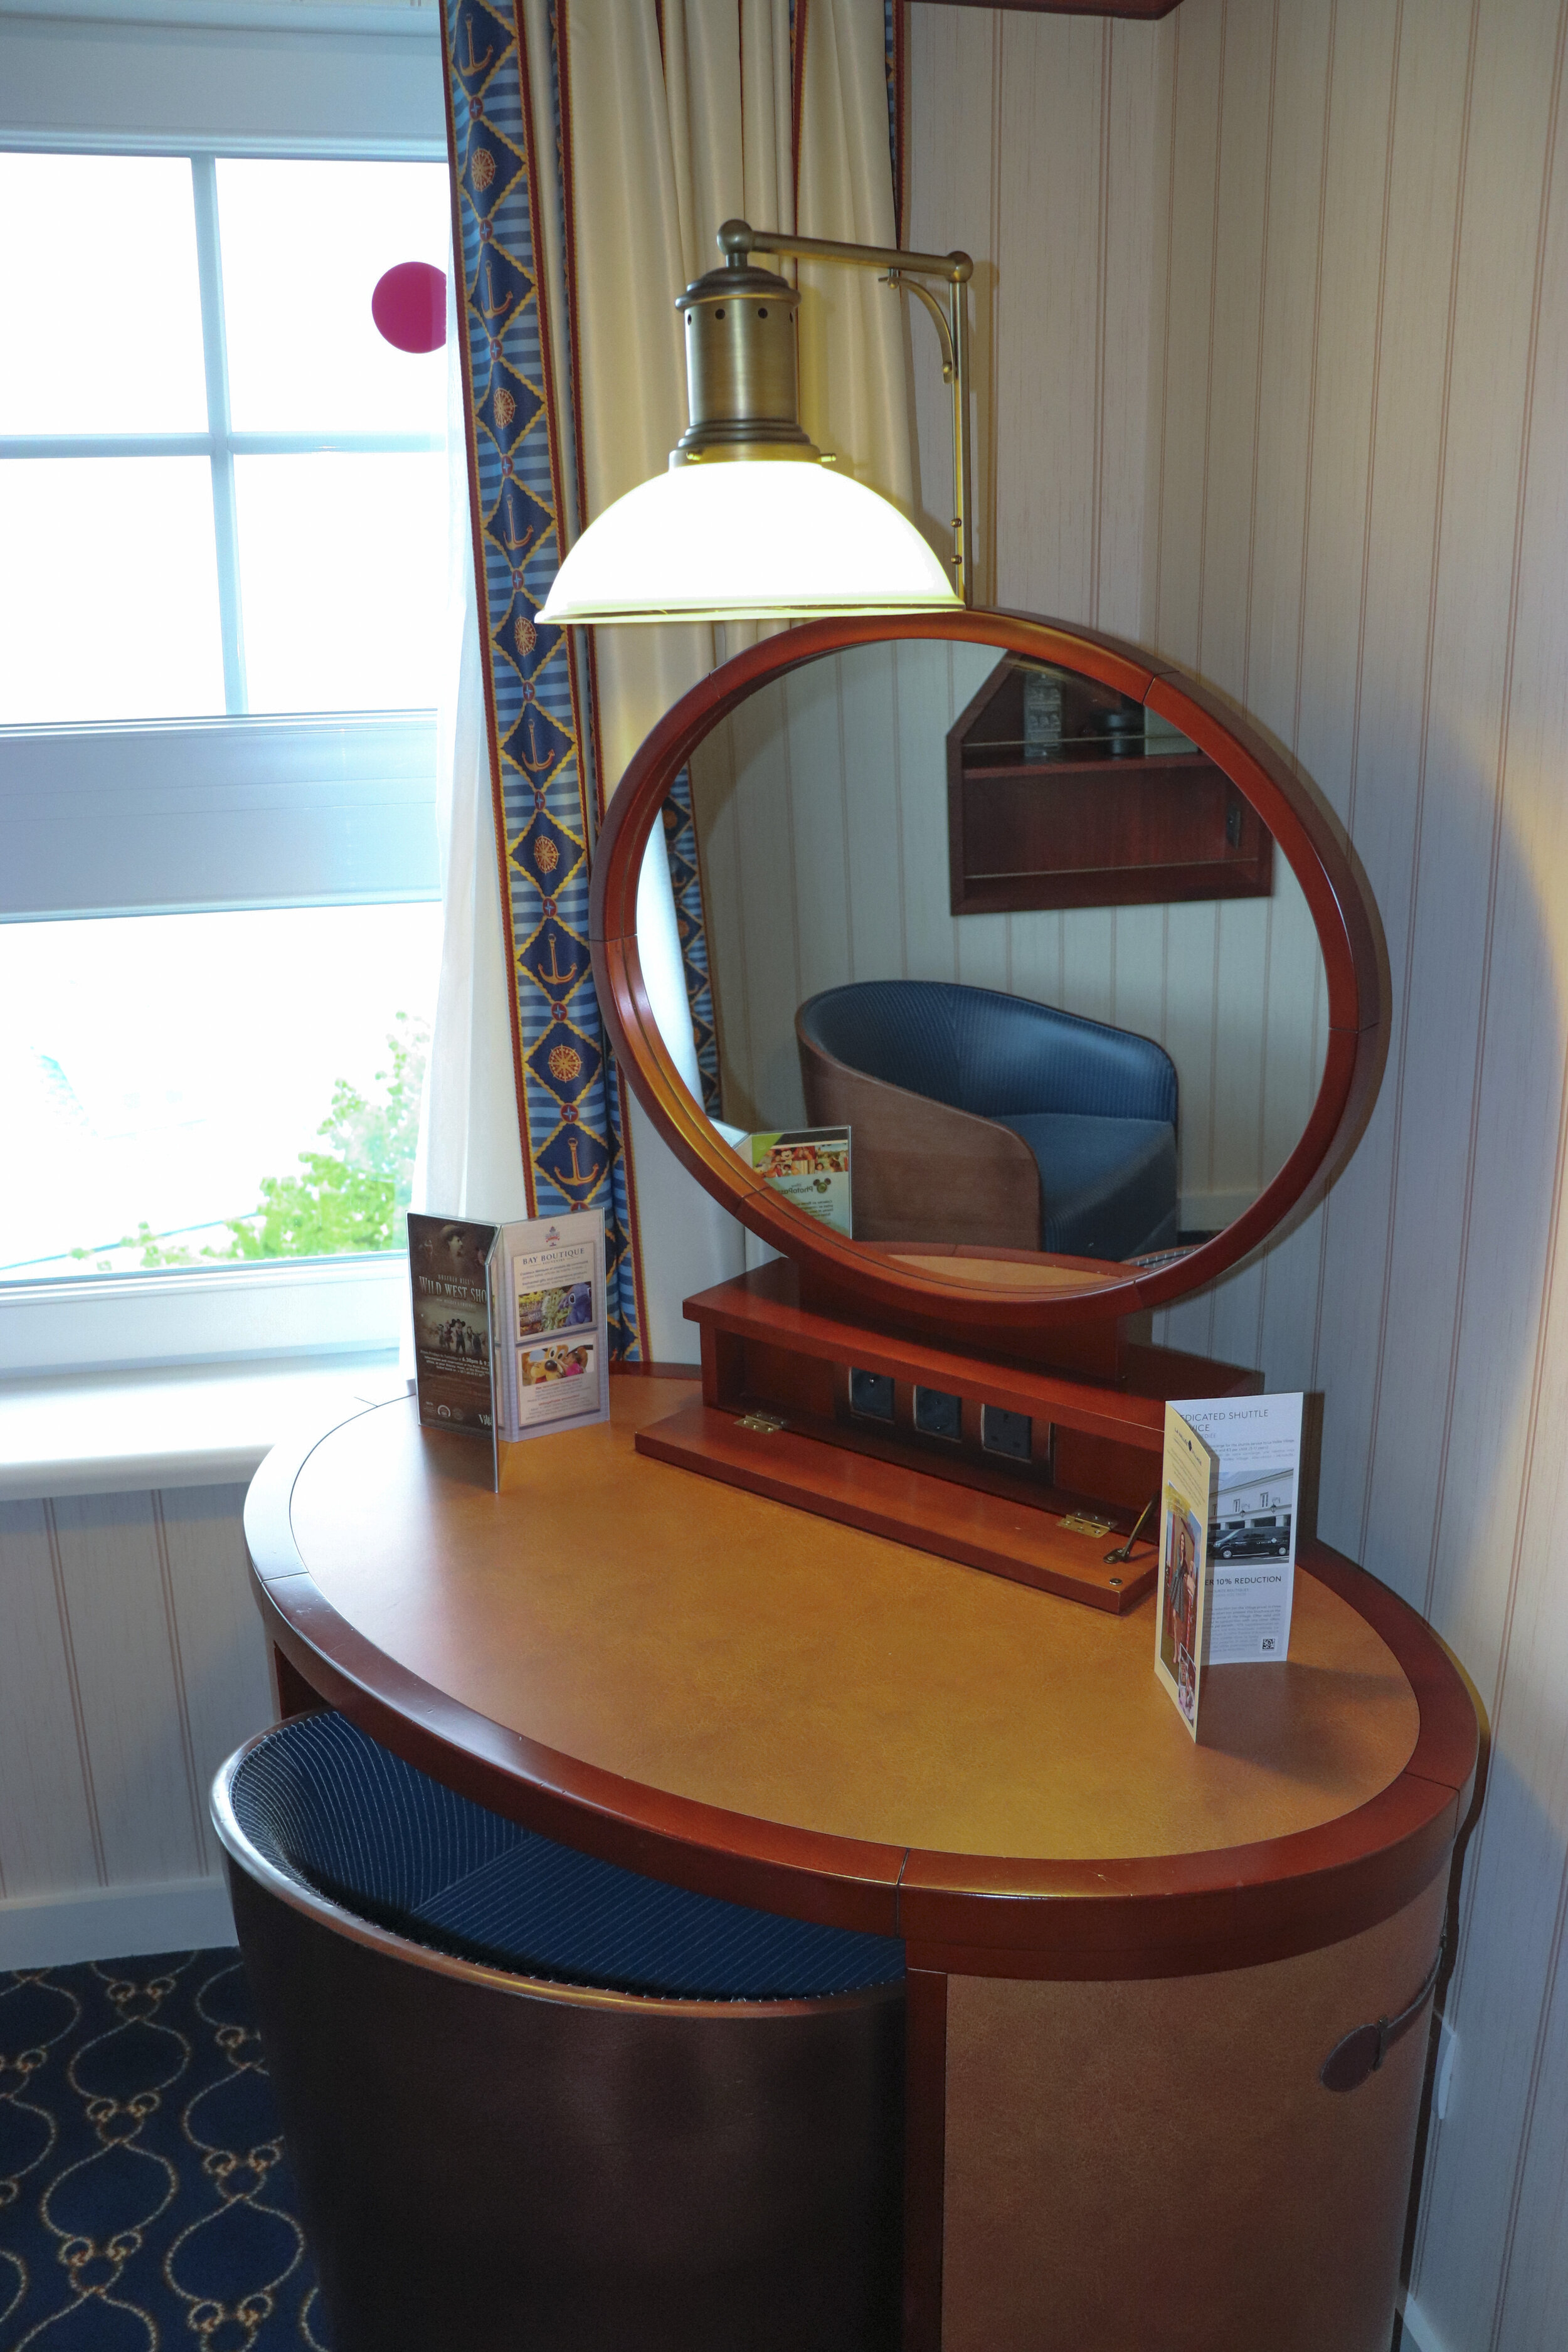 The vanity table featured different outlets.